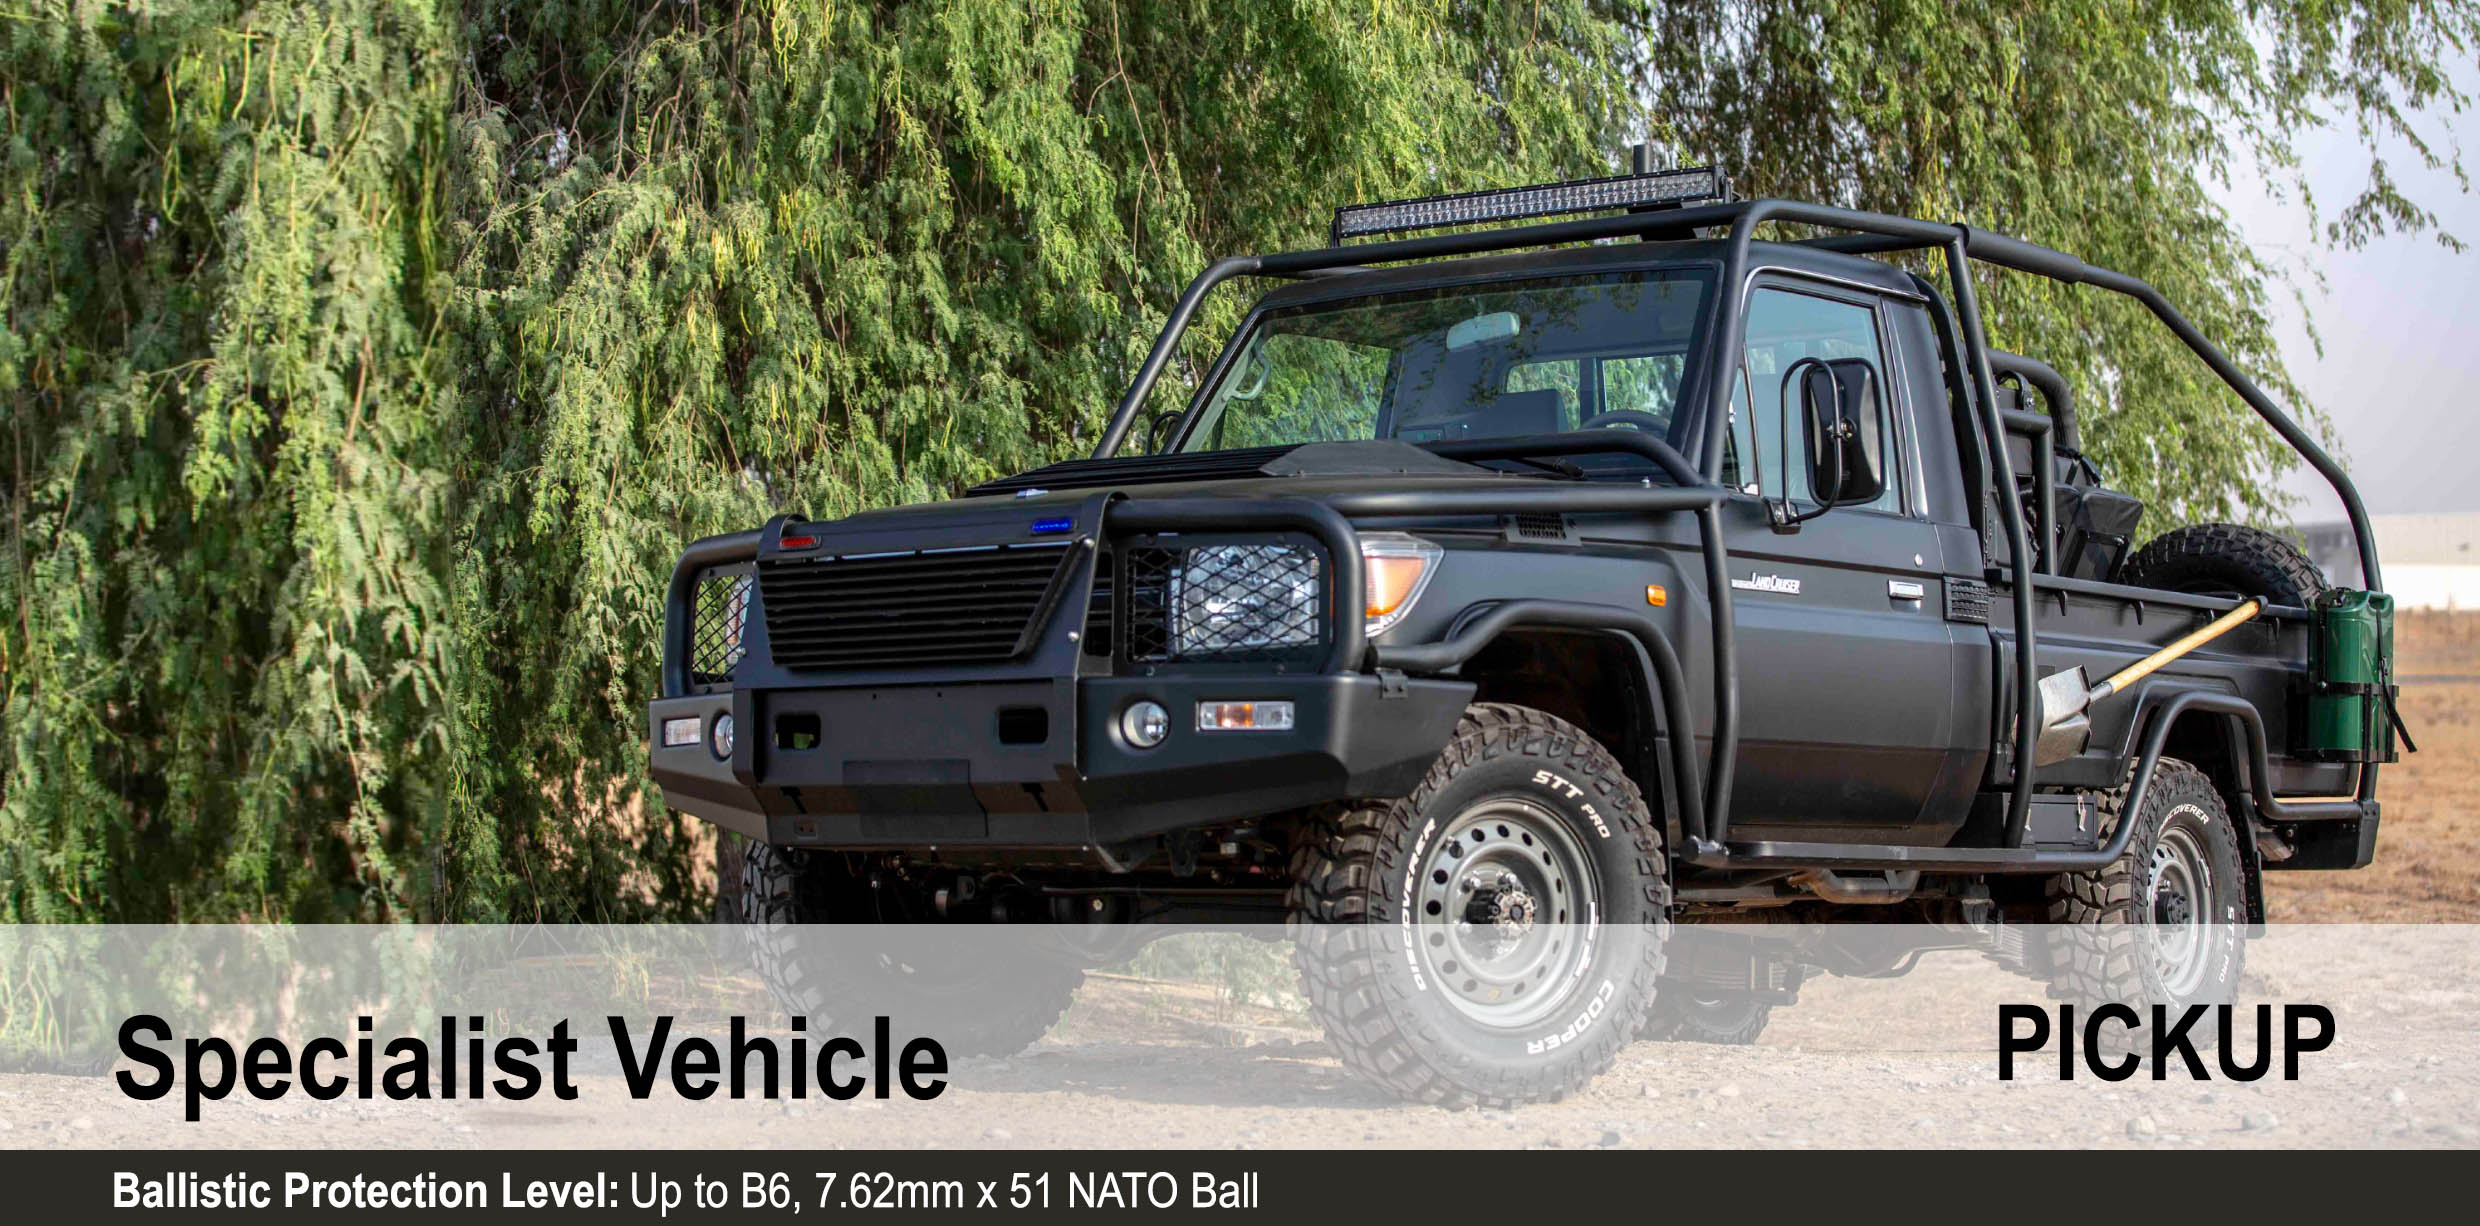 Mahindra Armored B6 Toyota Landcruiser 79 Pick Up Specialist Vehicle